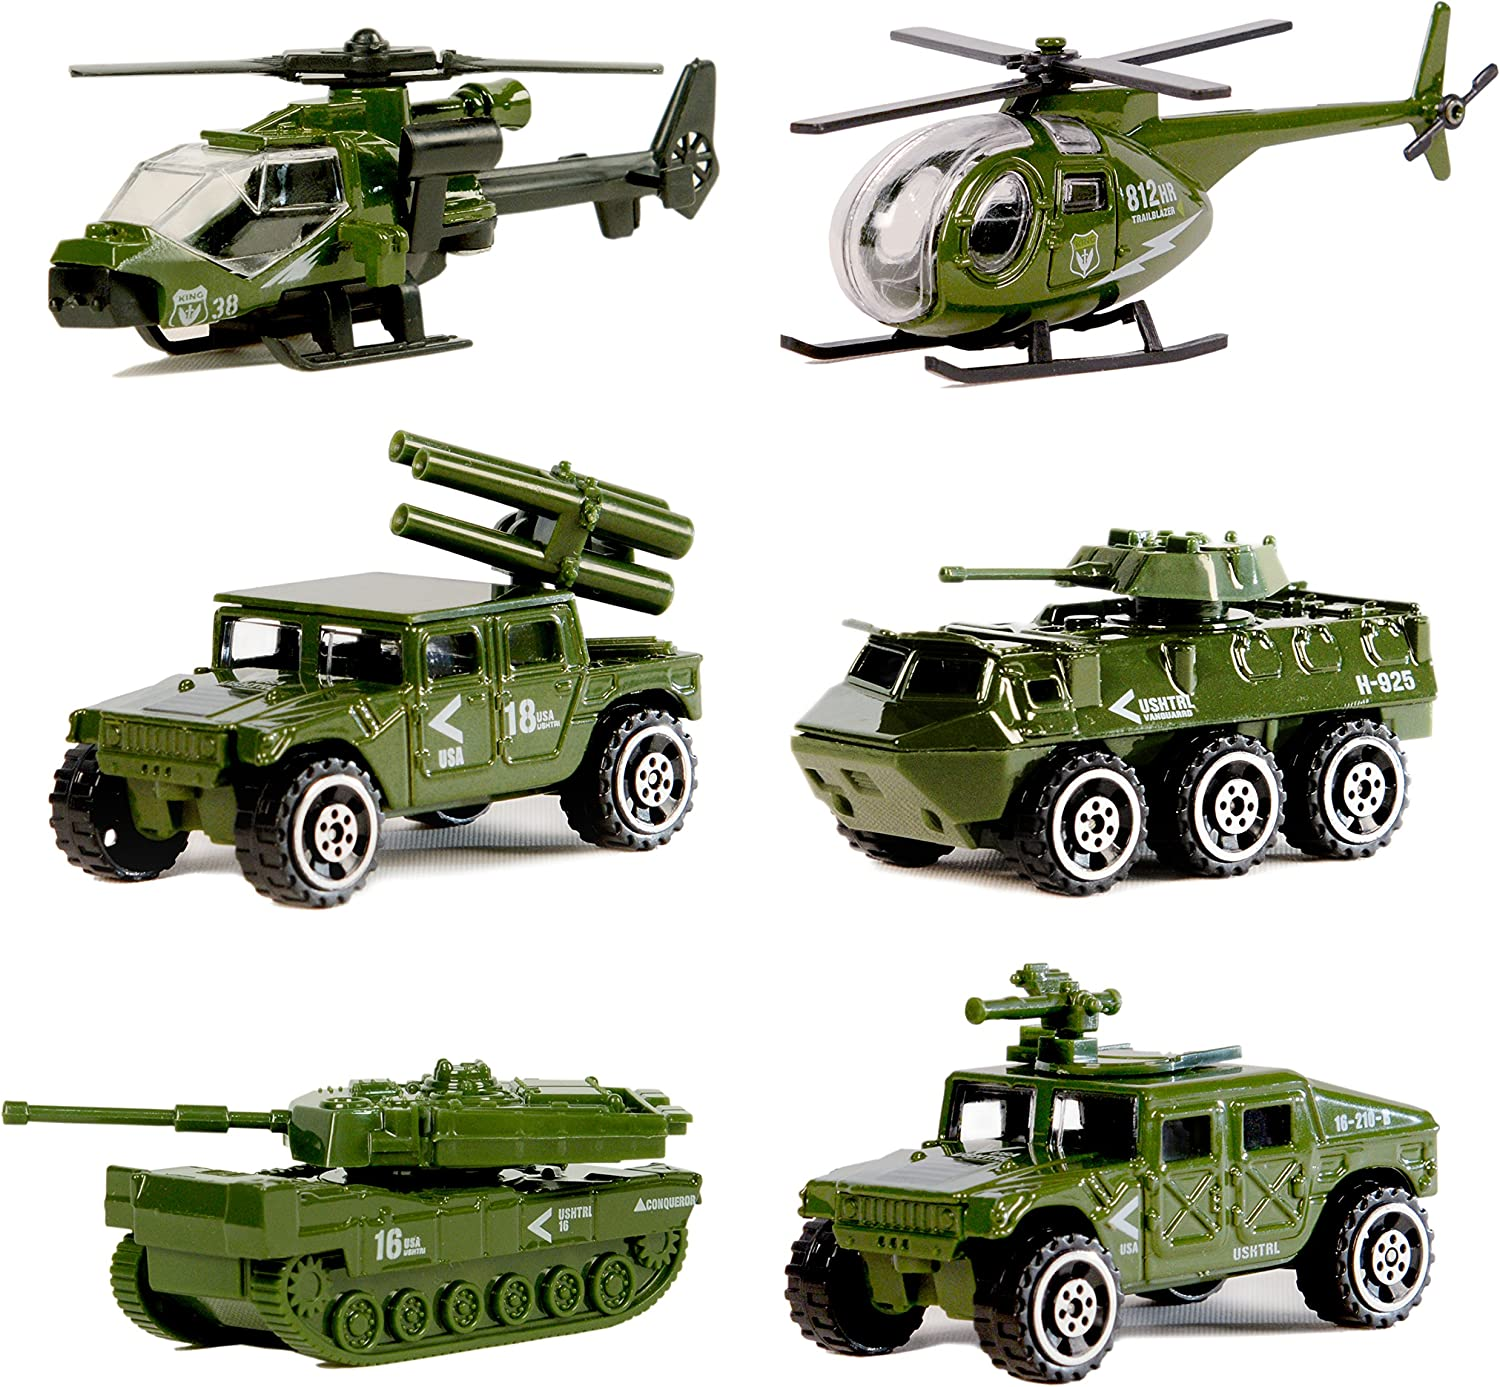 Die-cast Military Vehicles,6 Pack Assorted Alloy Metal Army Vehicle Models Car Toys,Original Color Mini Army Toy Tank,Jeep,Panzer,Anti-Air Vehicle,Helicopter Playset for Kids Toddlers Boys